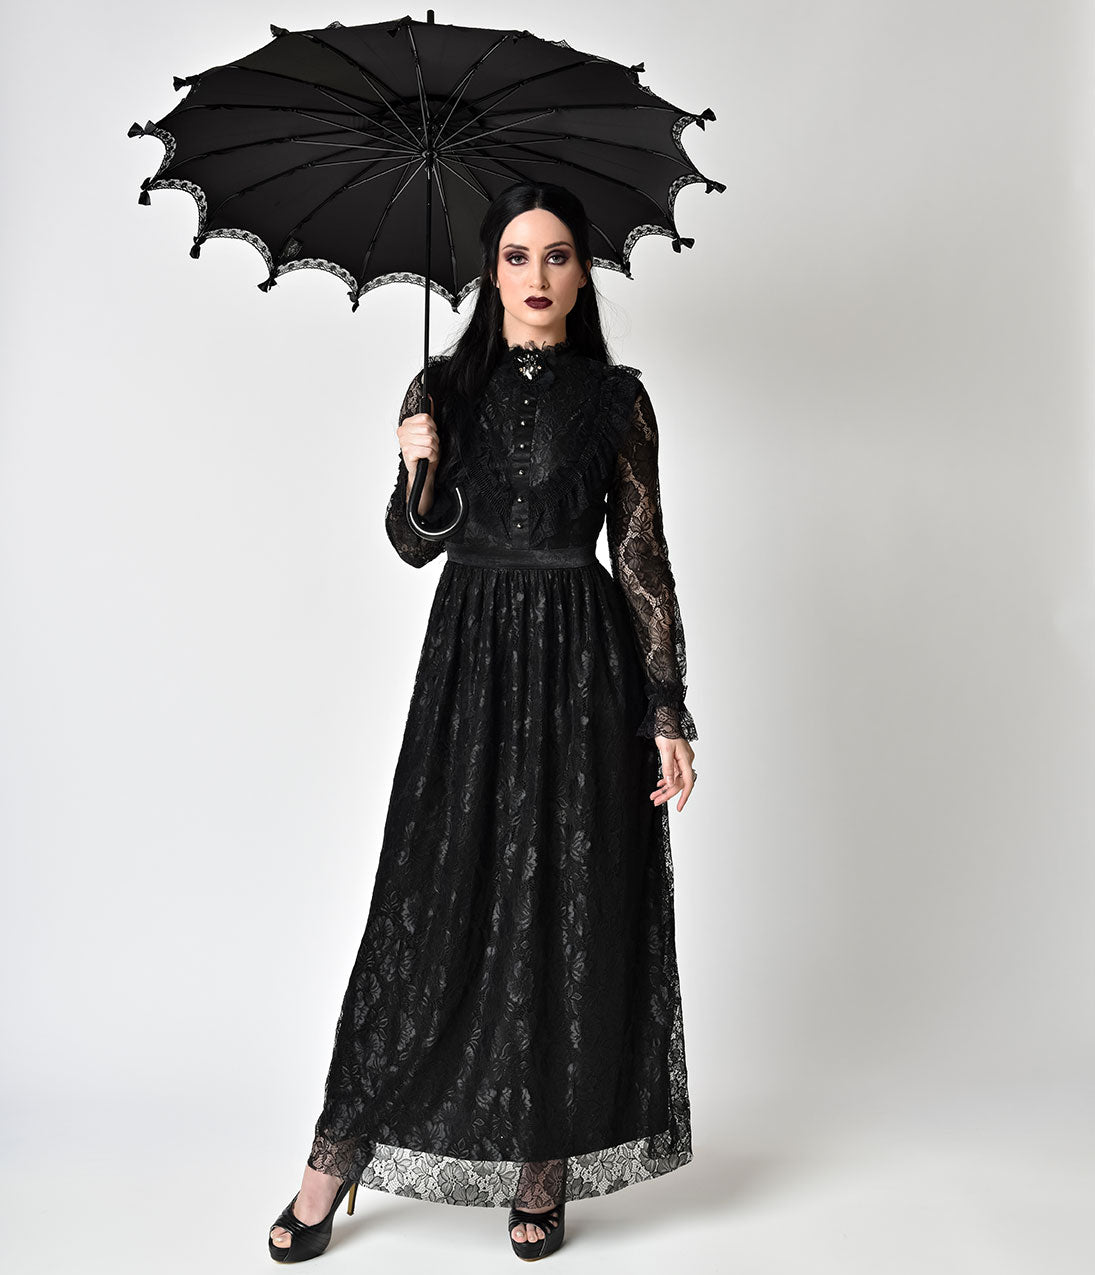 Victorian Costumes: Dresses, Saloon Girls, Southern Belle, Witch Victorian Style Black Lace Long Sleeve Maxi Dress $60.00 AT vintagedancer.com